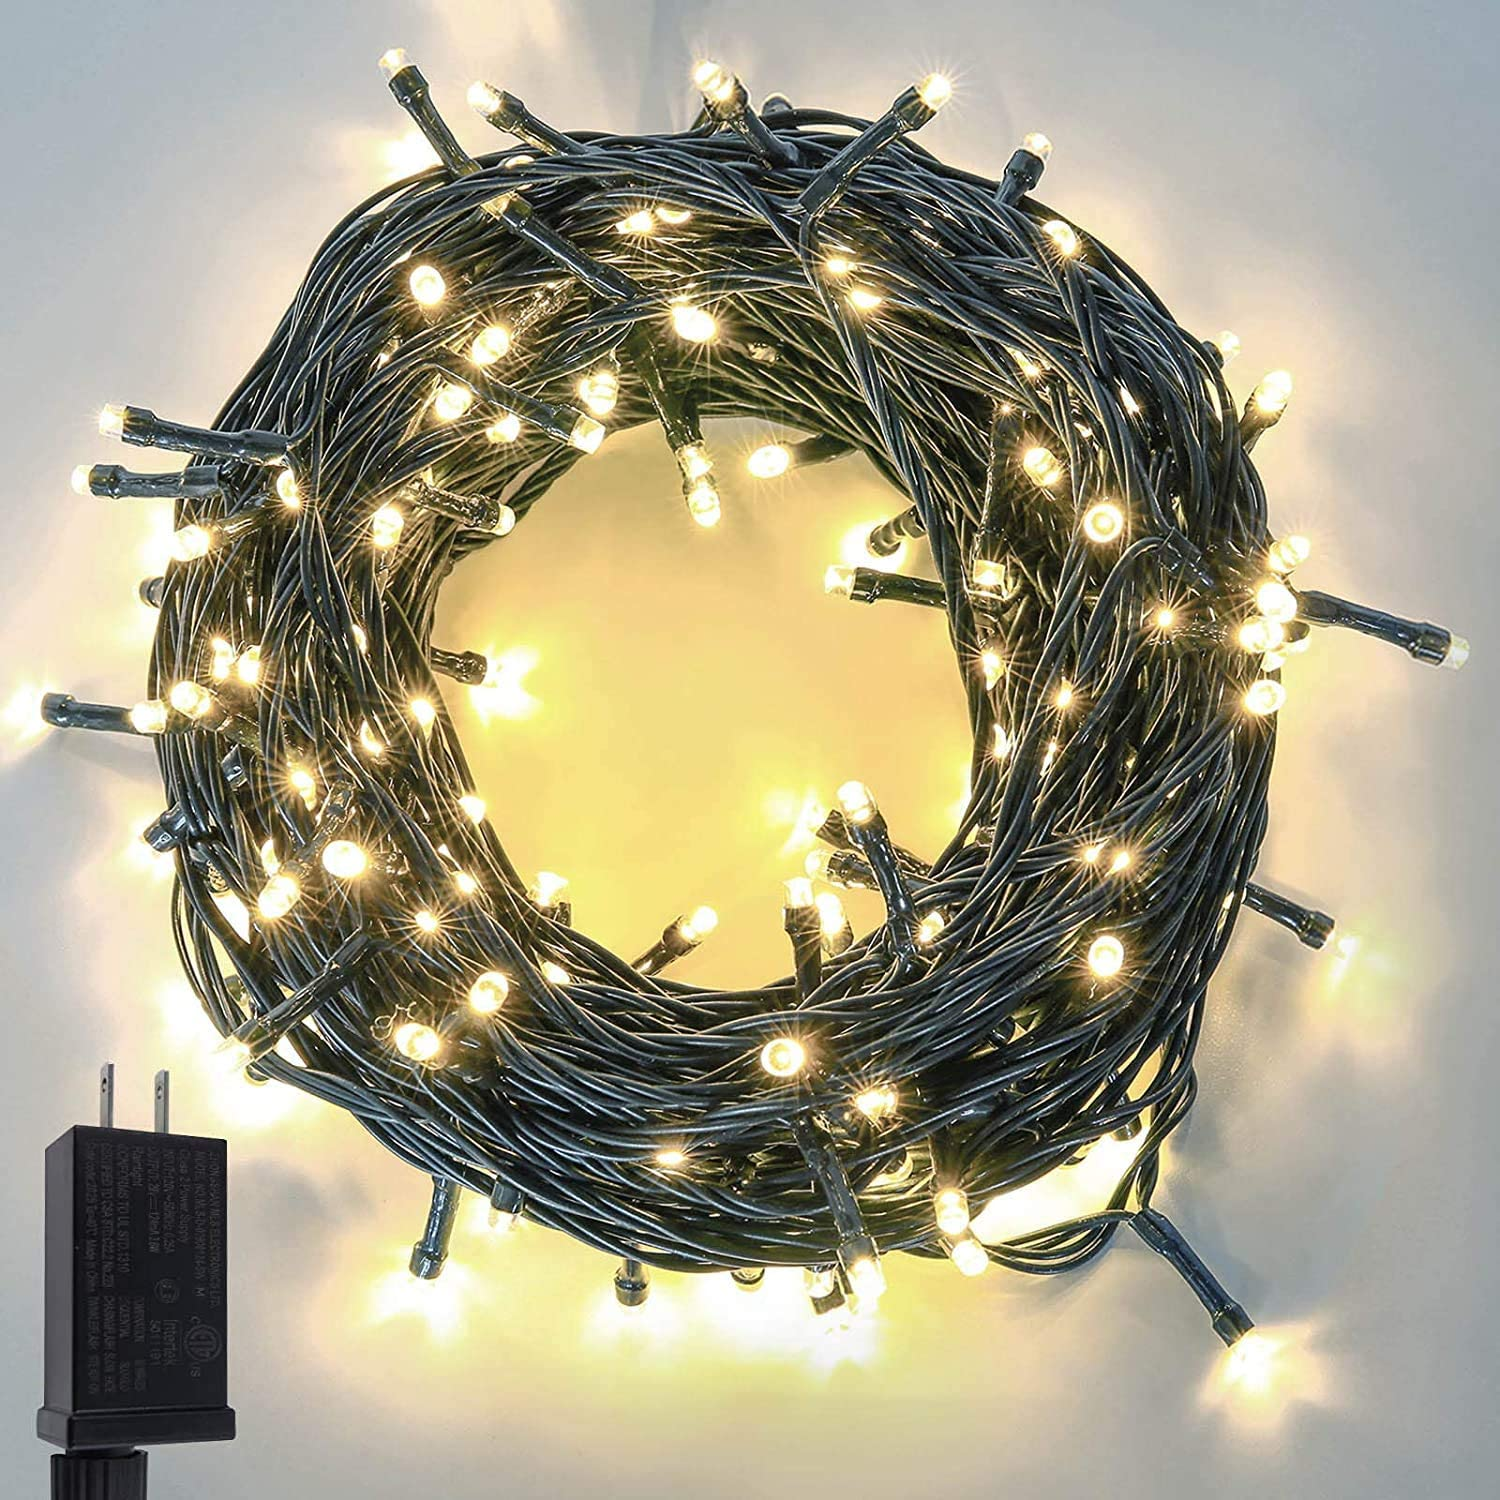 Extra-Long 95FT 240 LED Christmas String Lights Outdoor/Indoor, Ultra-Bright Christmas Tree Lights Waterproof Green Wire 8 Modes Plug in Fairy String Lights for Garden Wedding Party (Warm White)